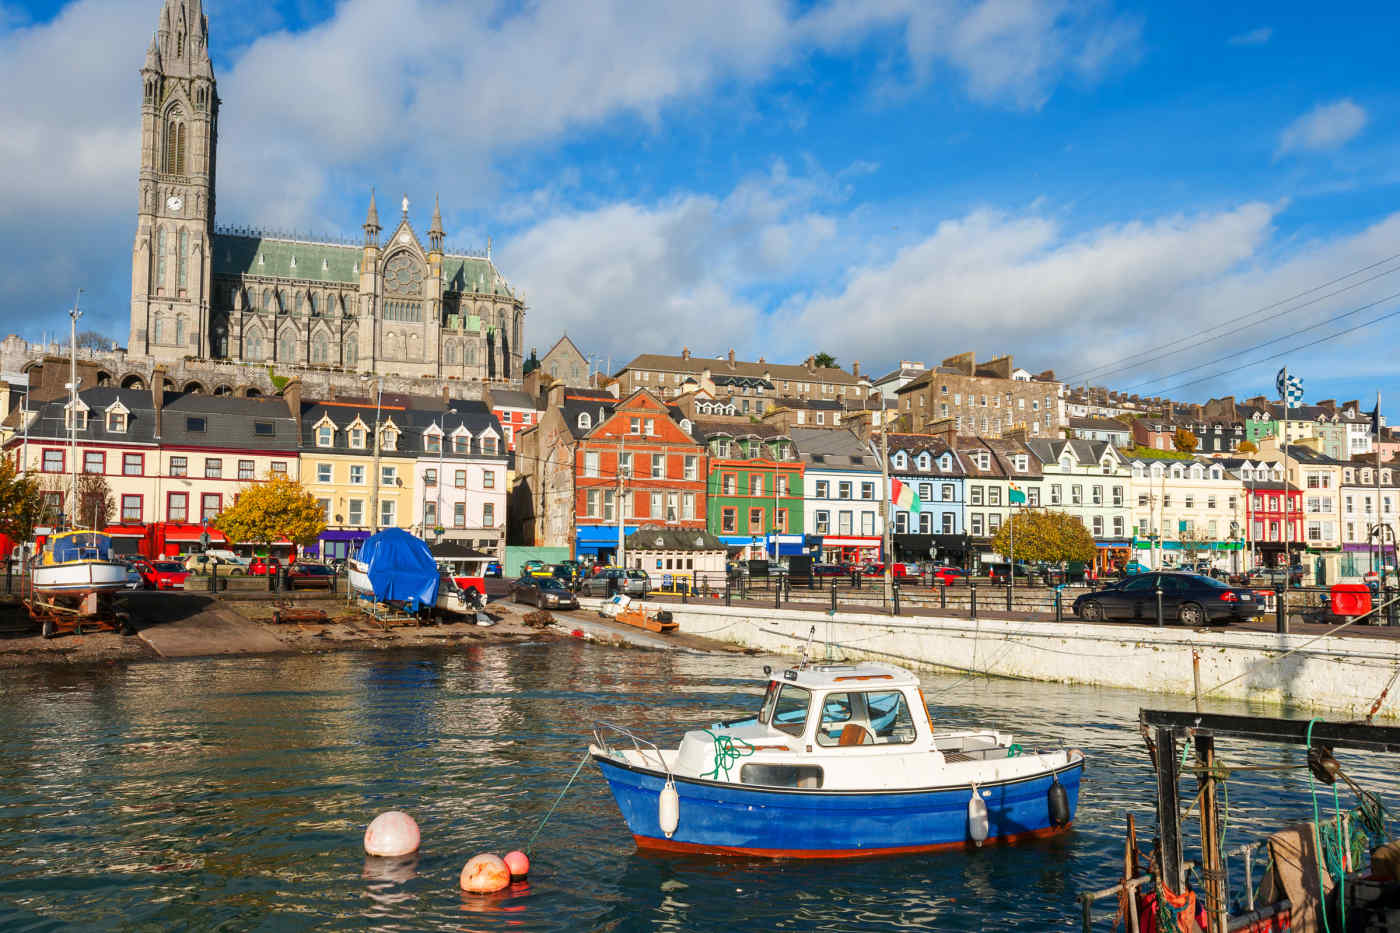 Cobh in County Cork, Ireland